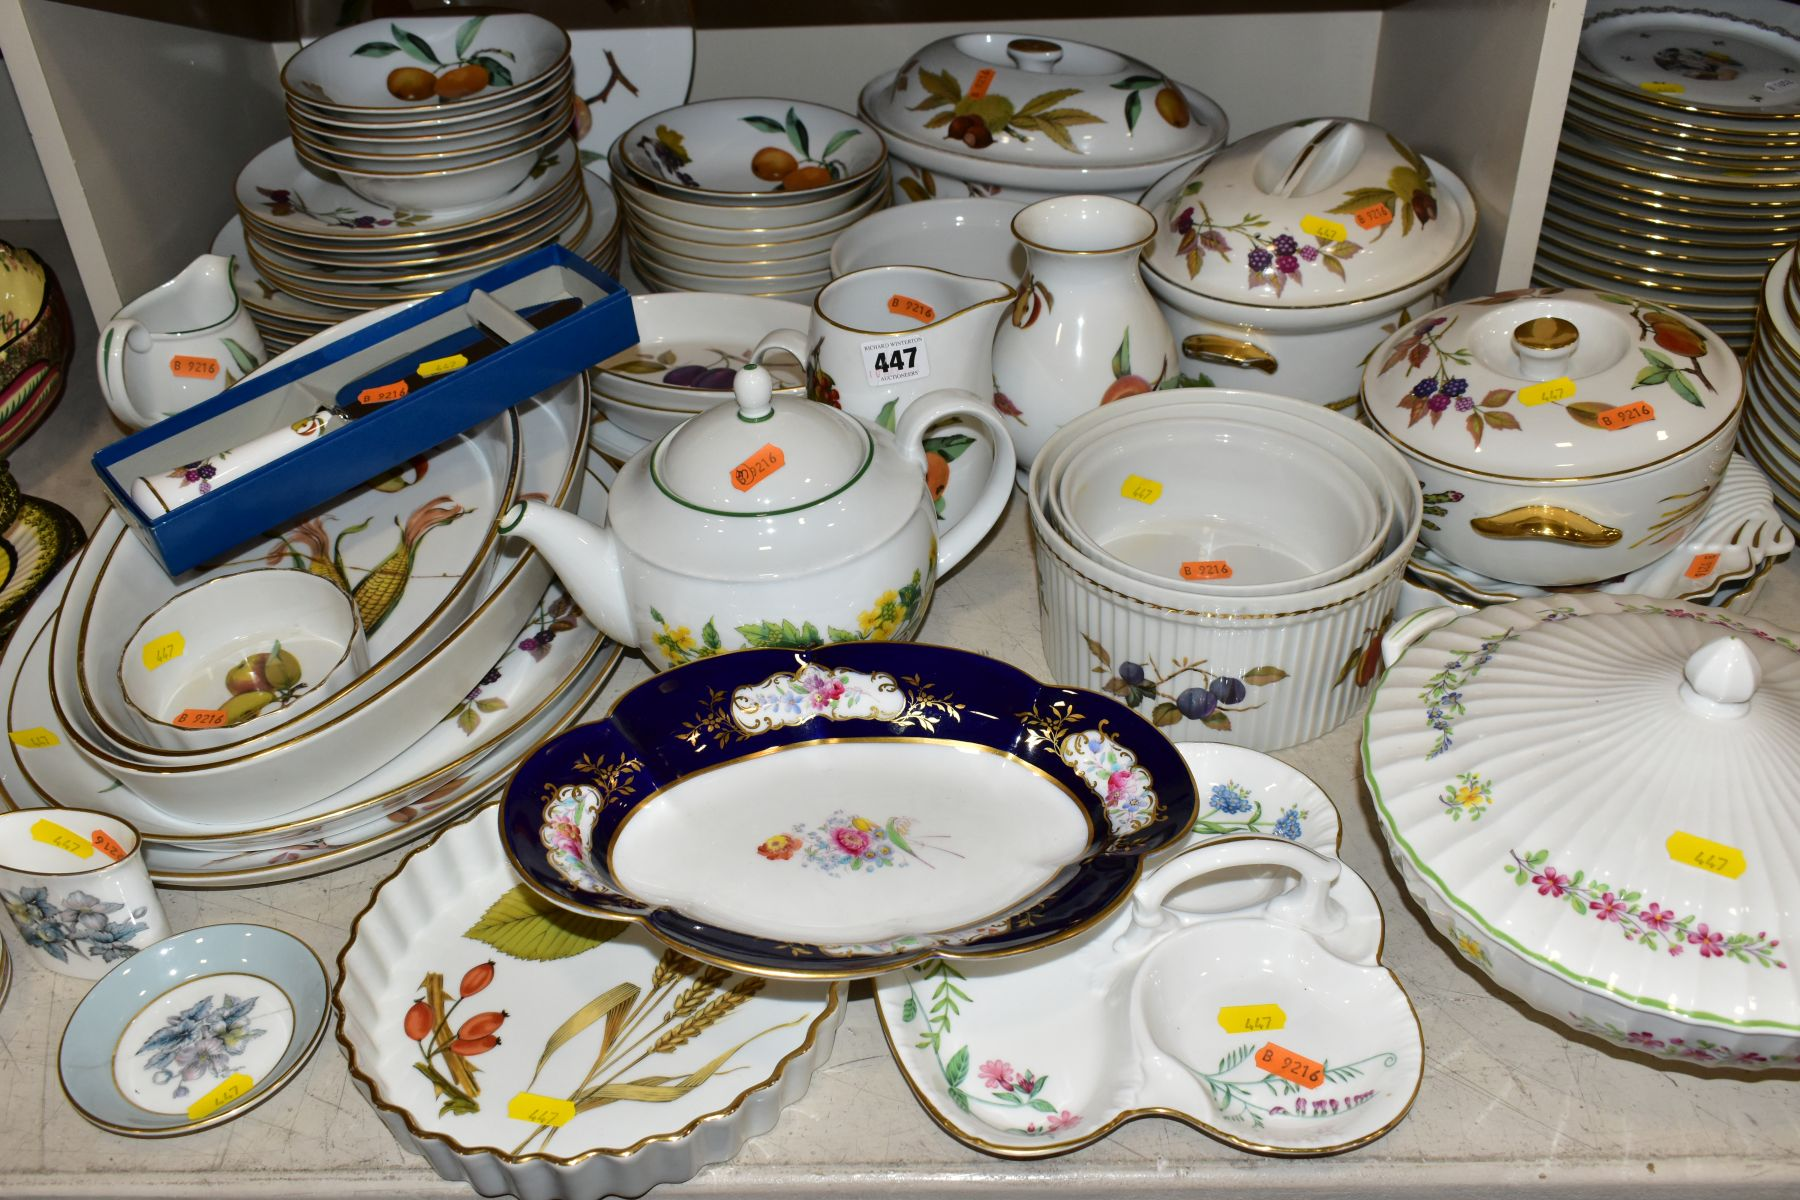 A QUATITY OF ROYAL WORCESTER 'EVESHAM' TABLEWARES, to include tureens, souffle dishes, meat